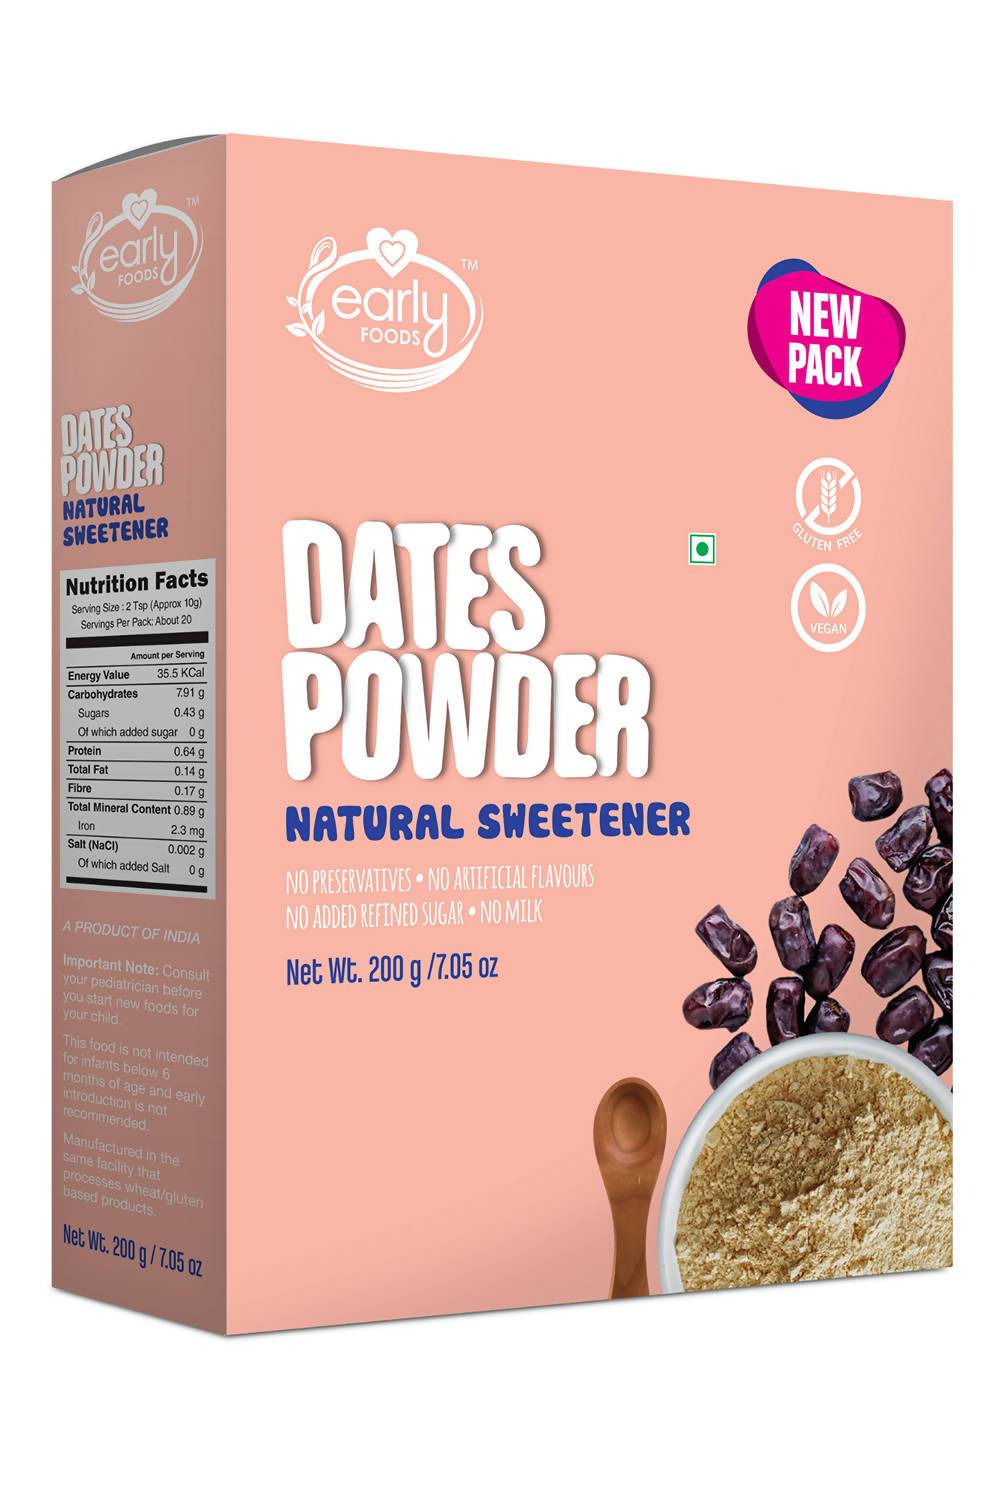 Dates Powder Natural Sweetener